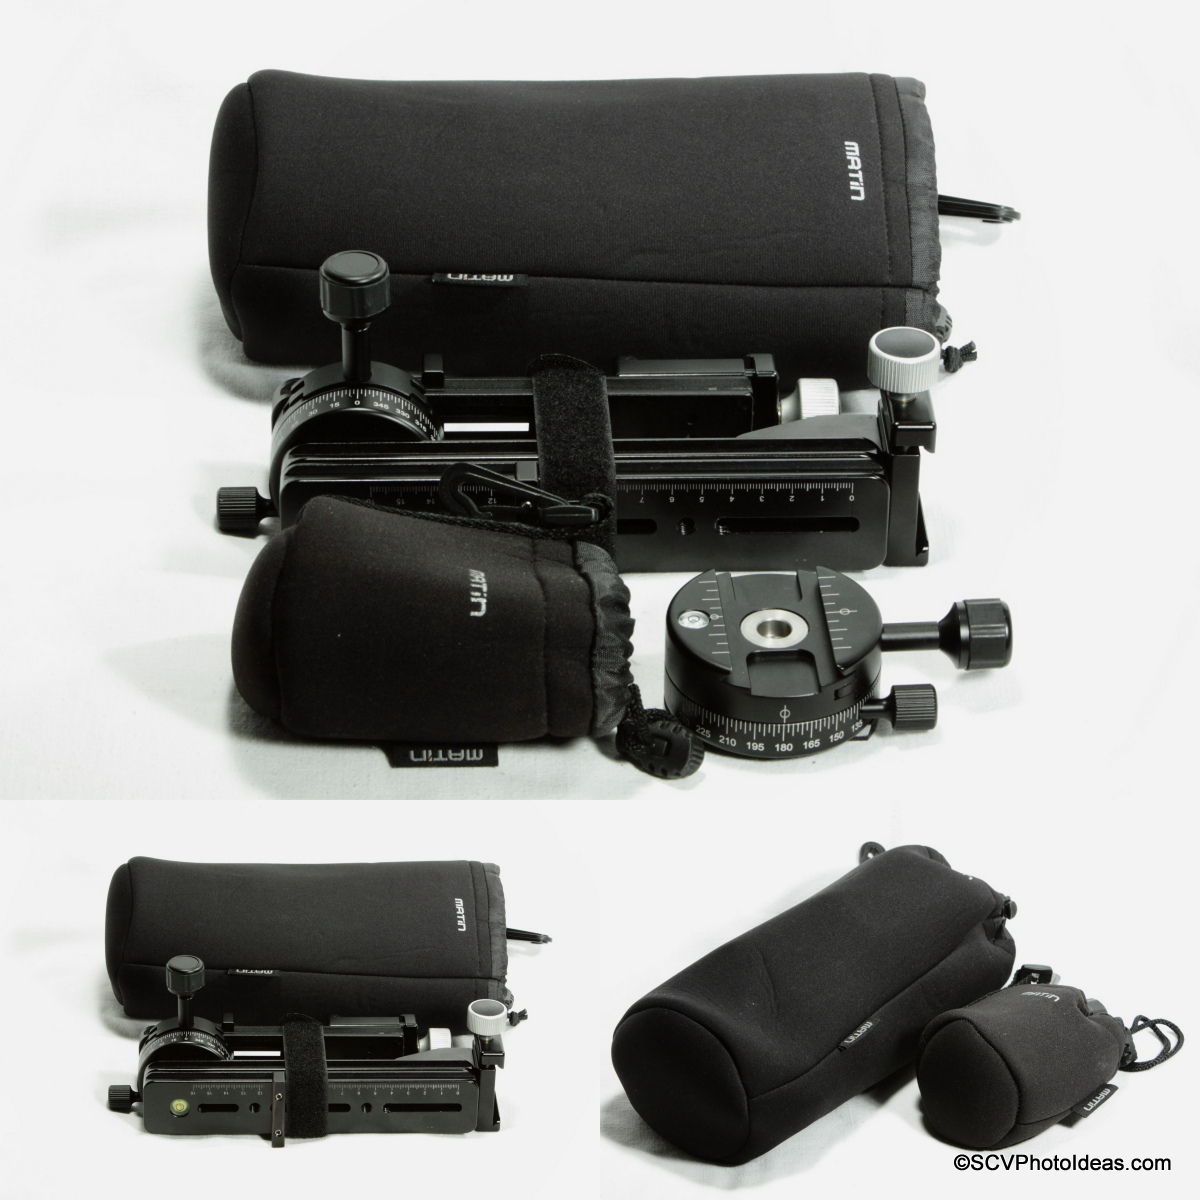 SCV Multirow head packed in Matin Neoprene Lens Pouches XL & M